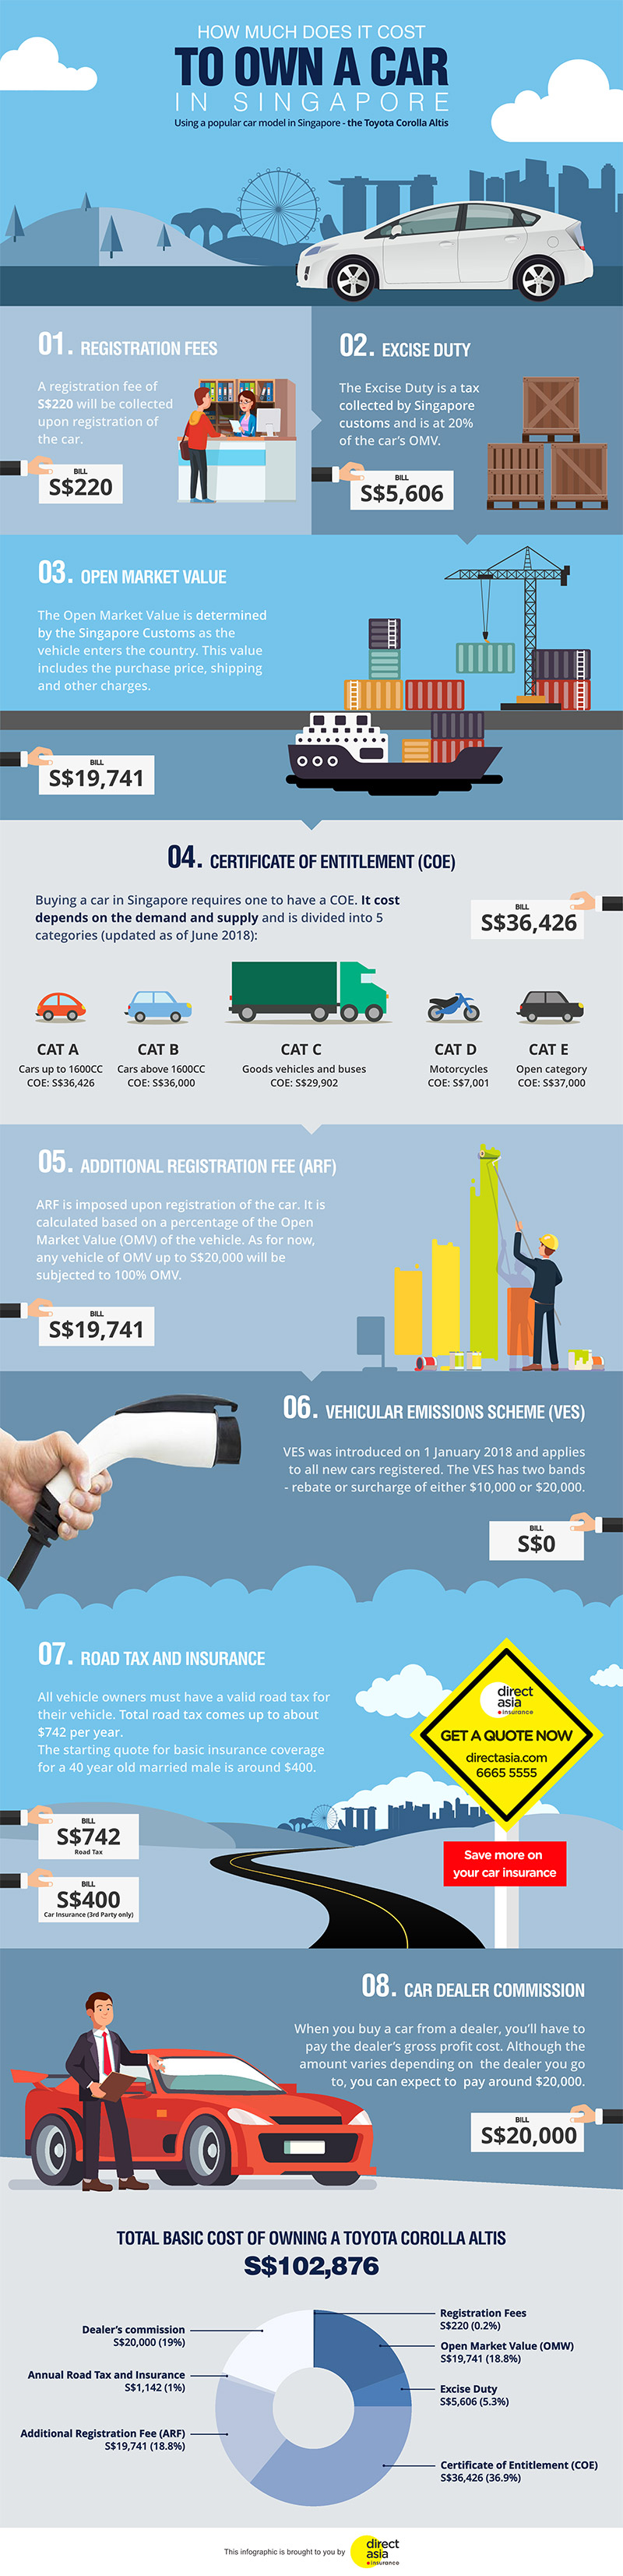 How much does it cost to own a car in Singapore (Infographic)